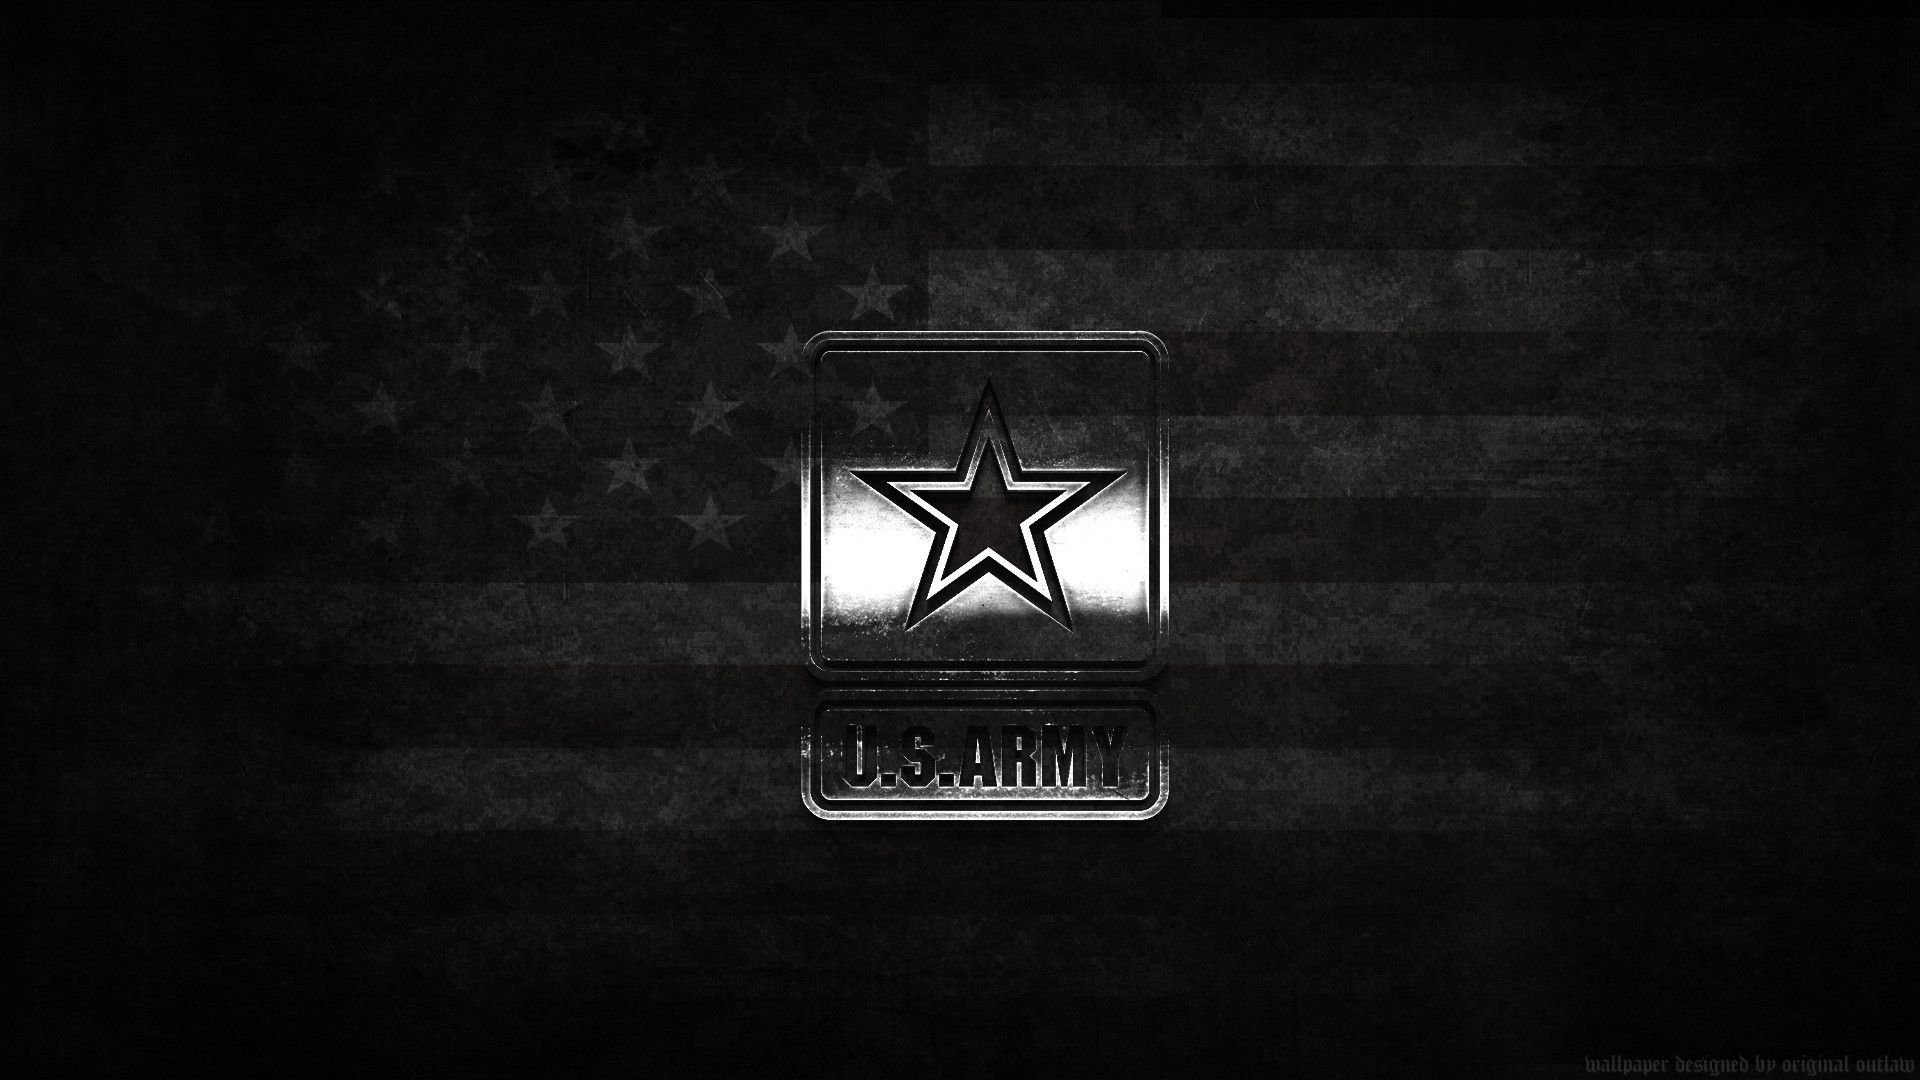 U.S. Army Wallpaper